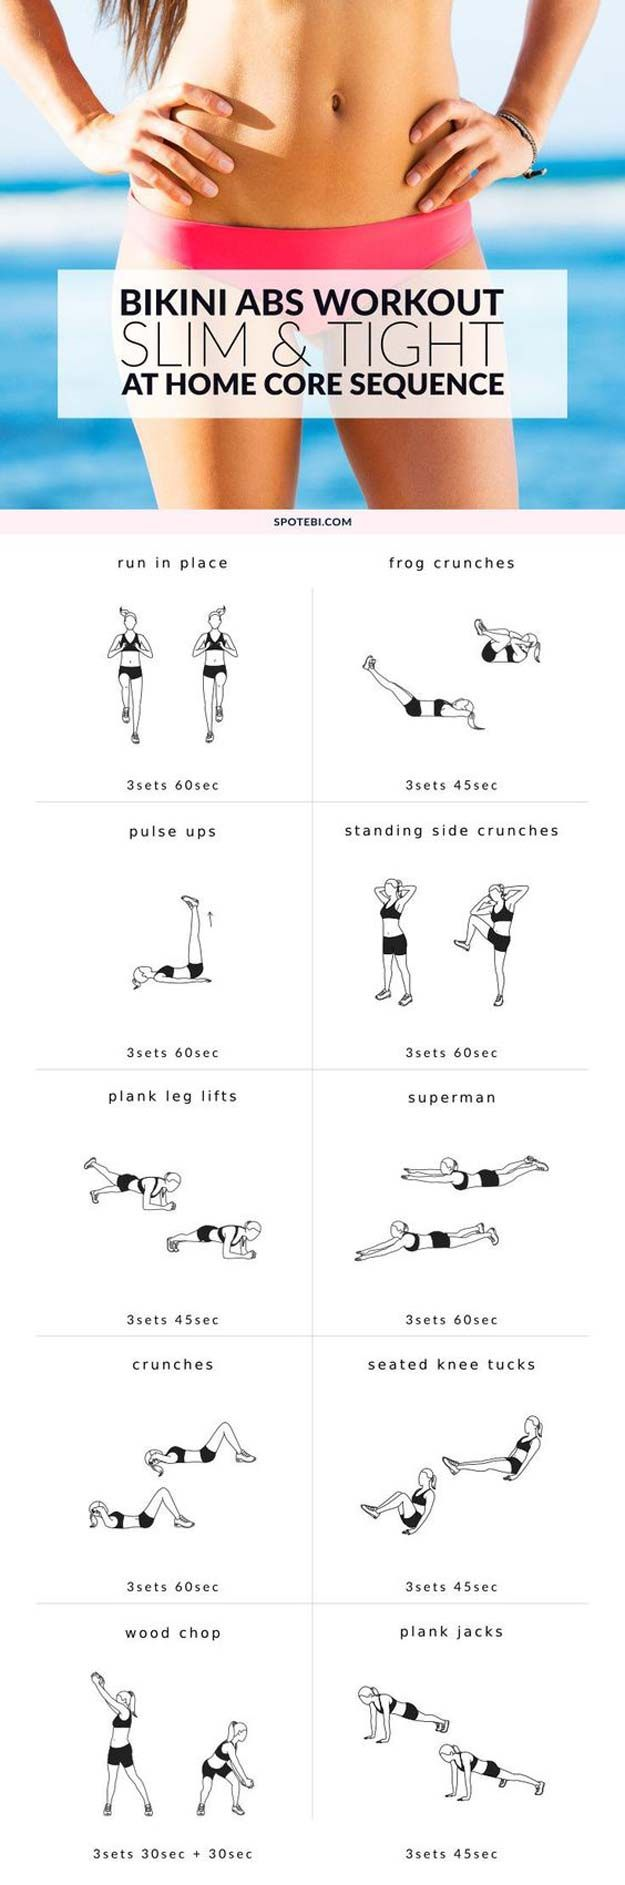 Best Workouts for a Tight Tummy - At Home Bikini Abs Workout - Ab Exercises and ...